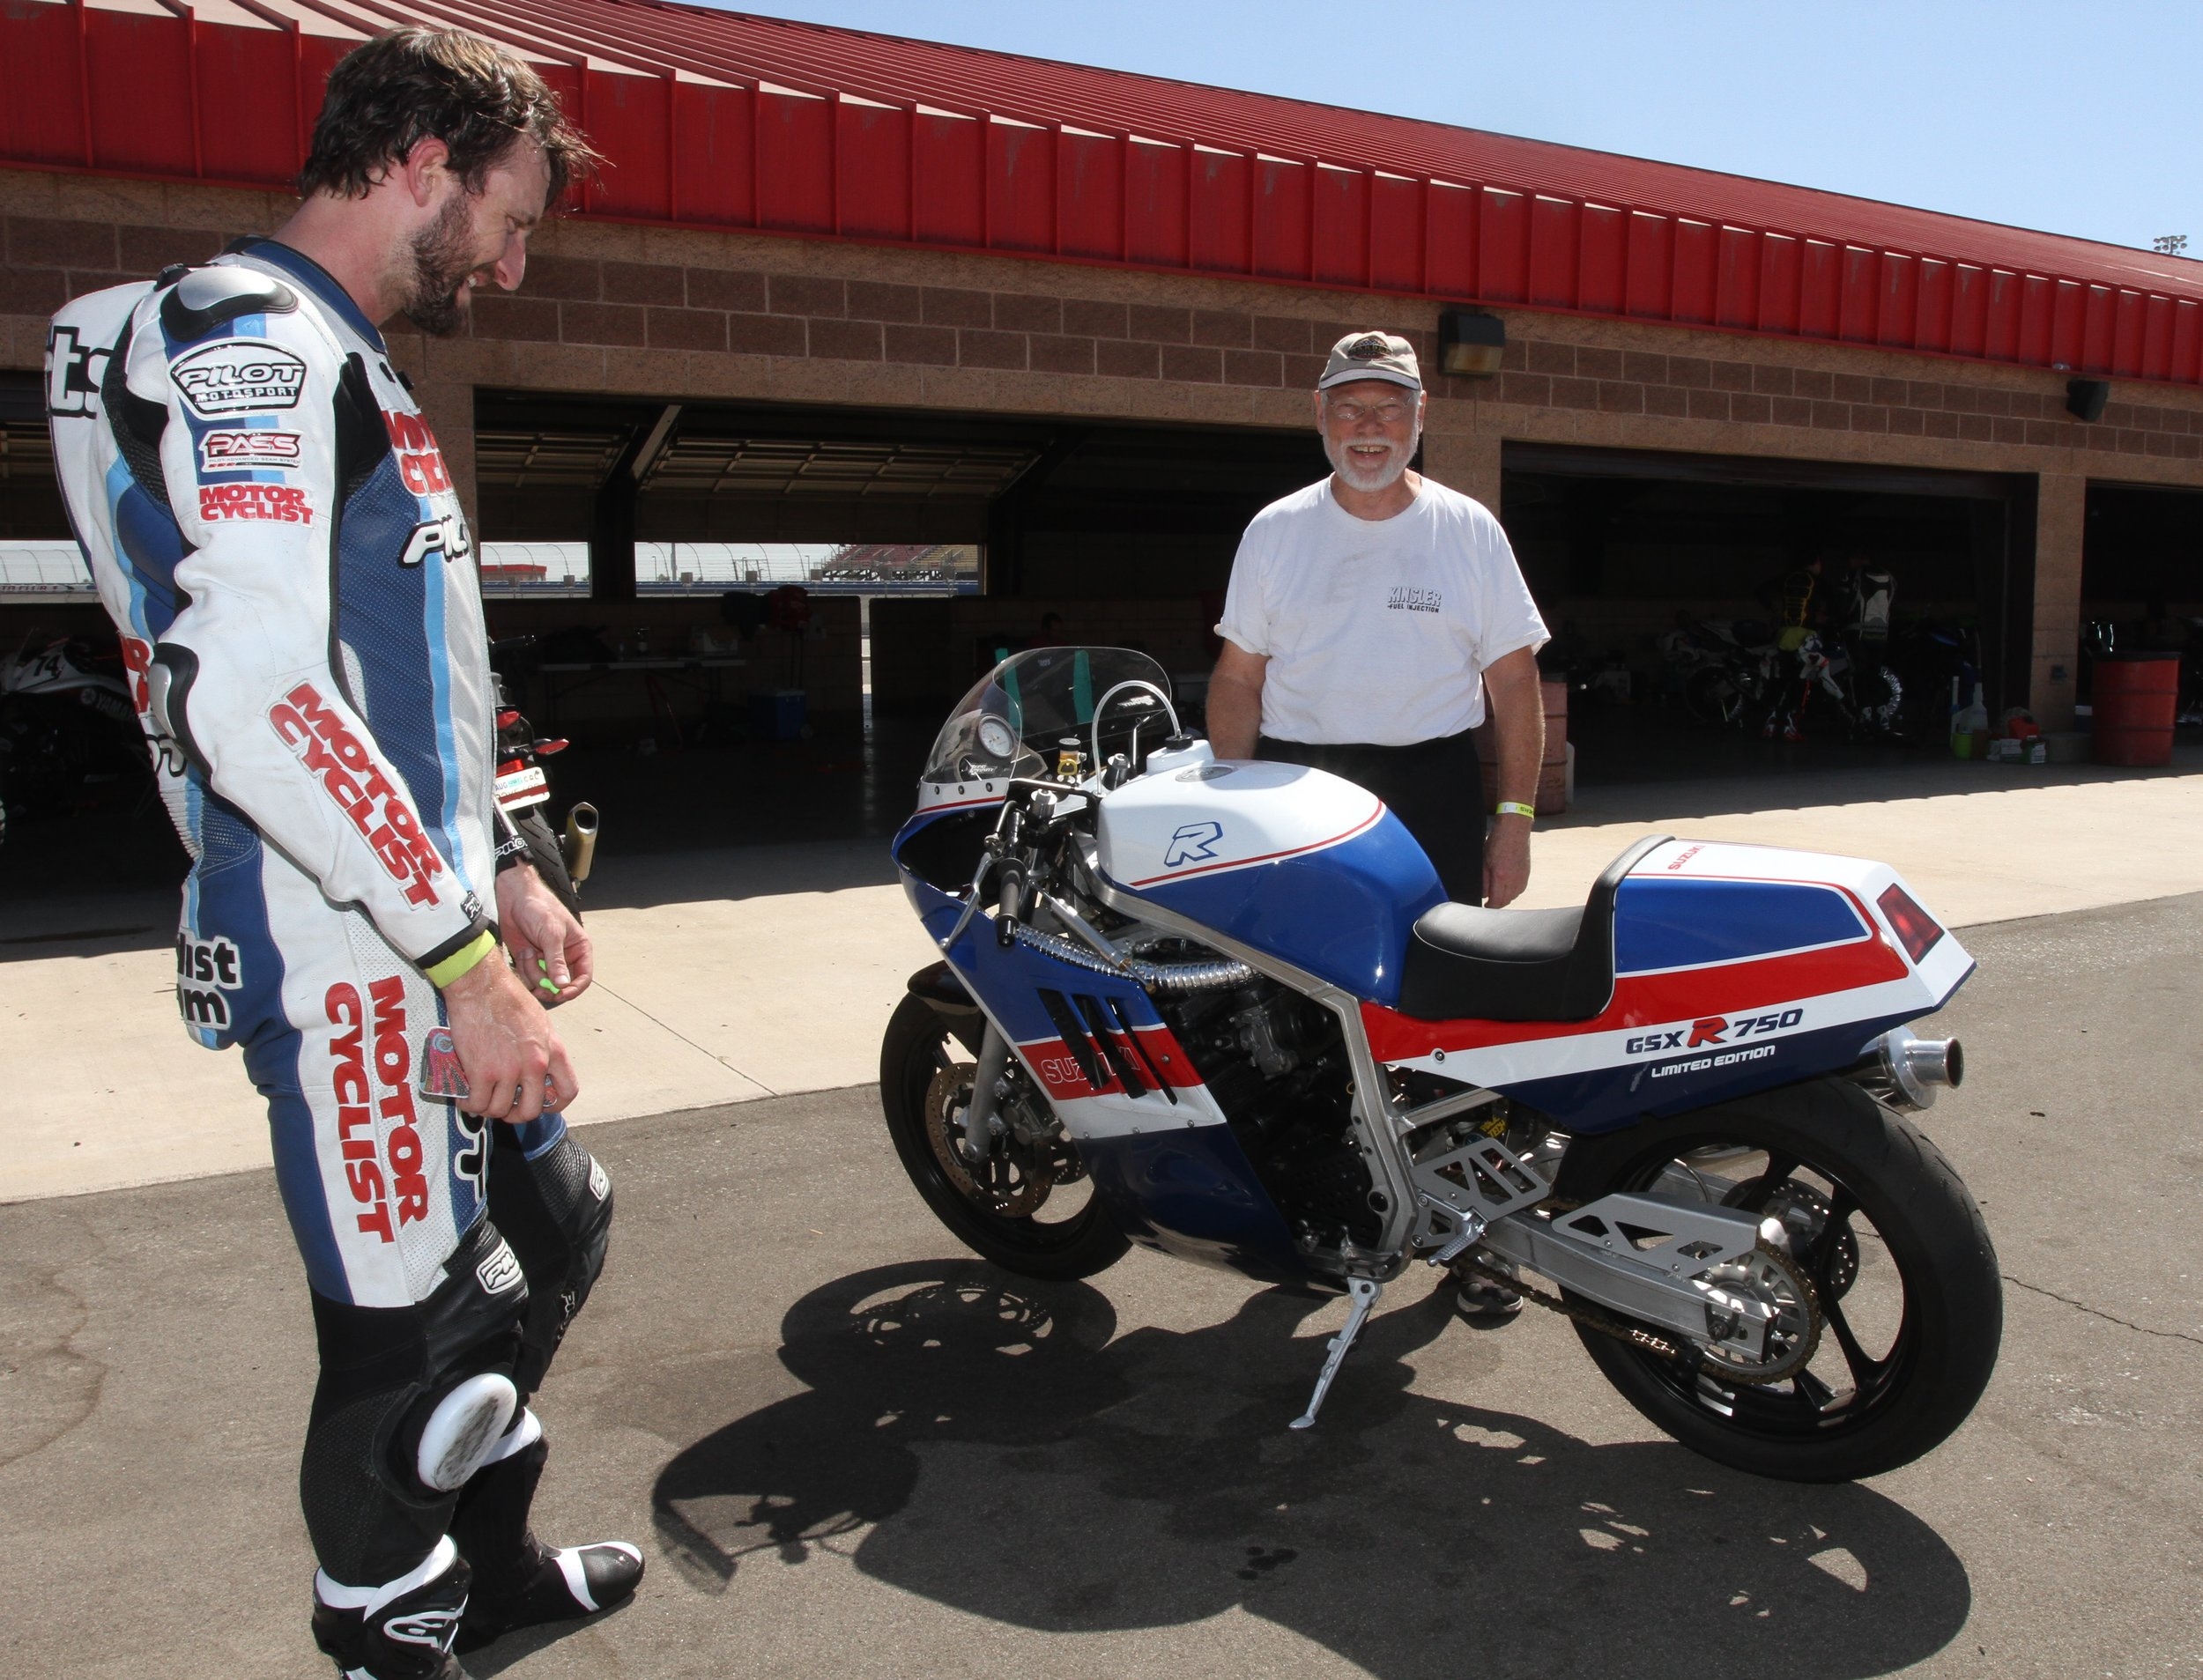 Suzuki GSX-R750 at Auto Club Speedway with Zack and Tate